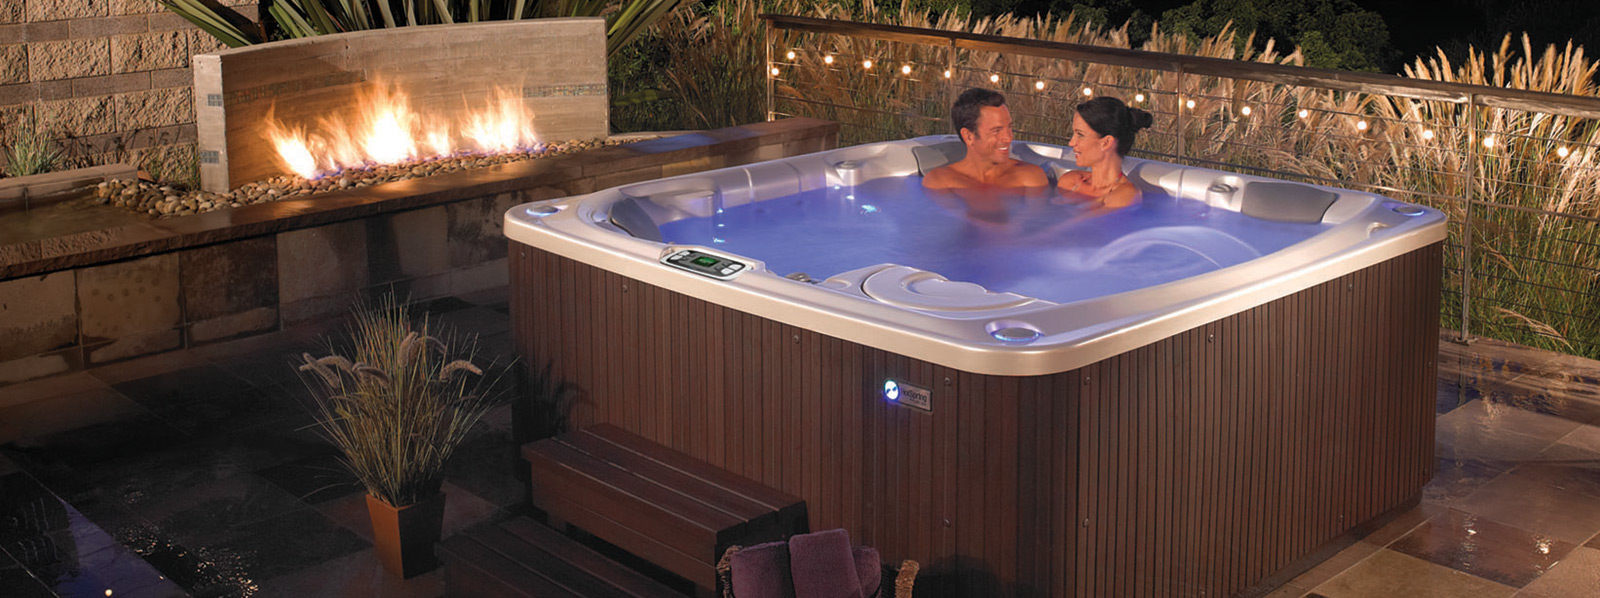 Hot Spring brand hot tub